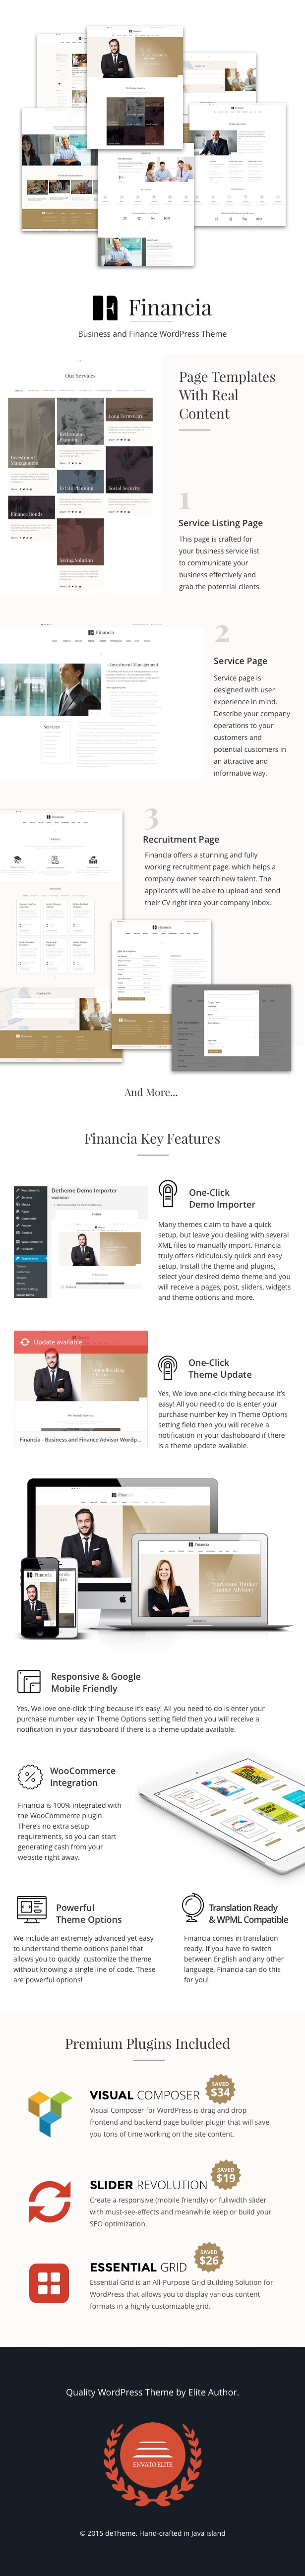 Financia - Business and Finance WordPress Theme - 1